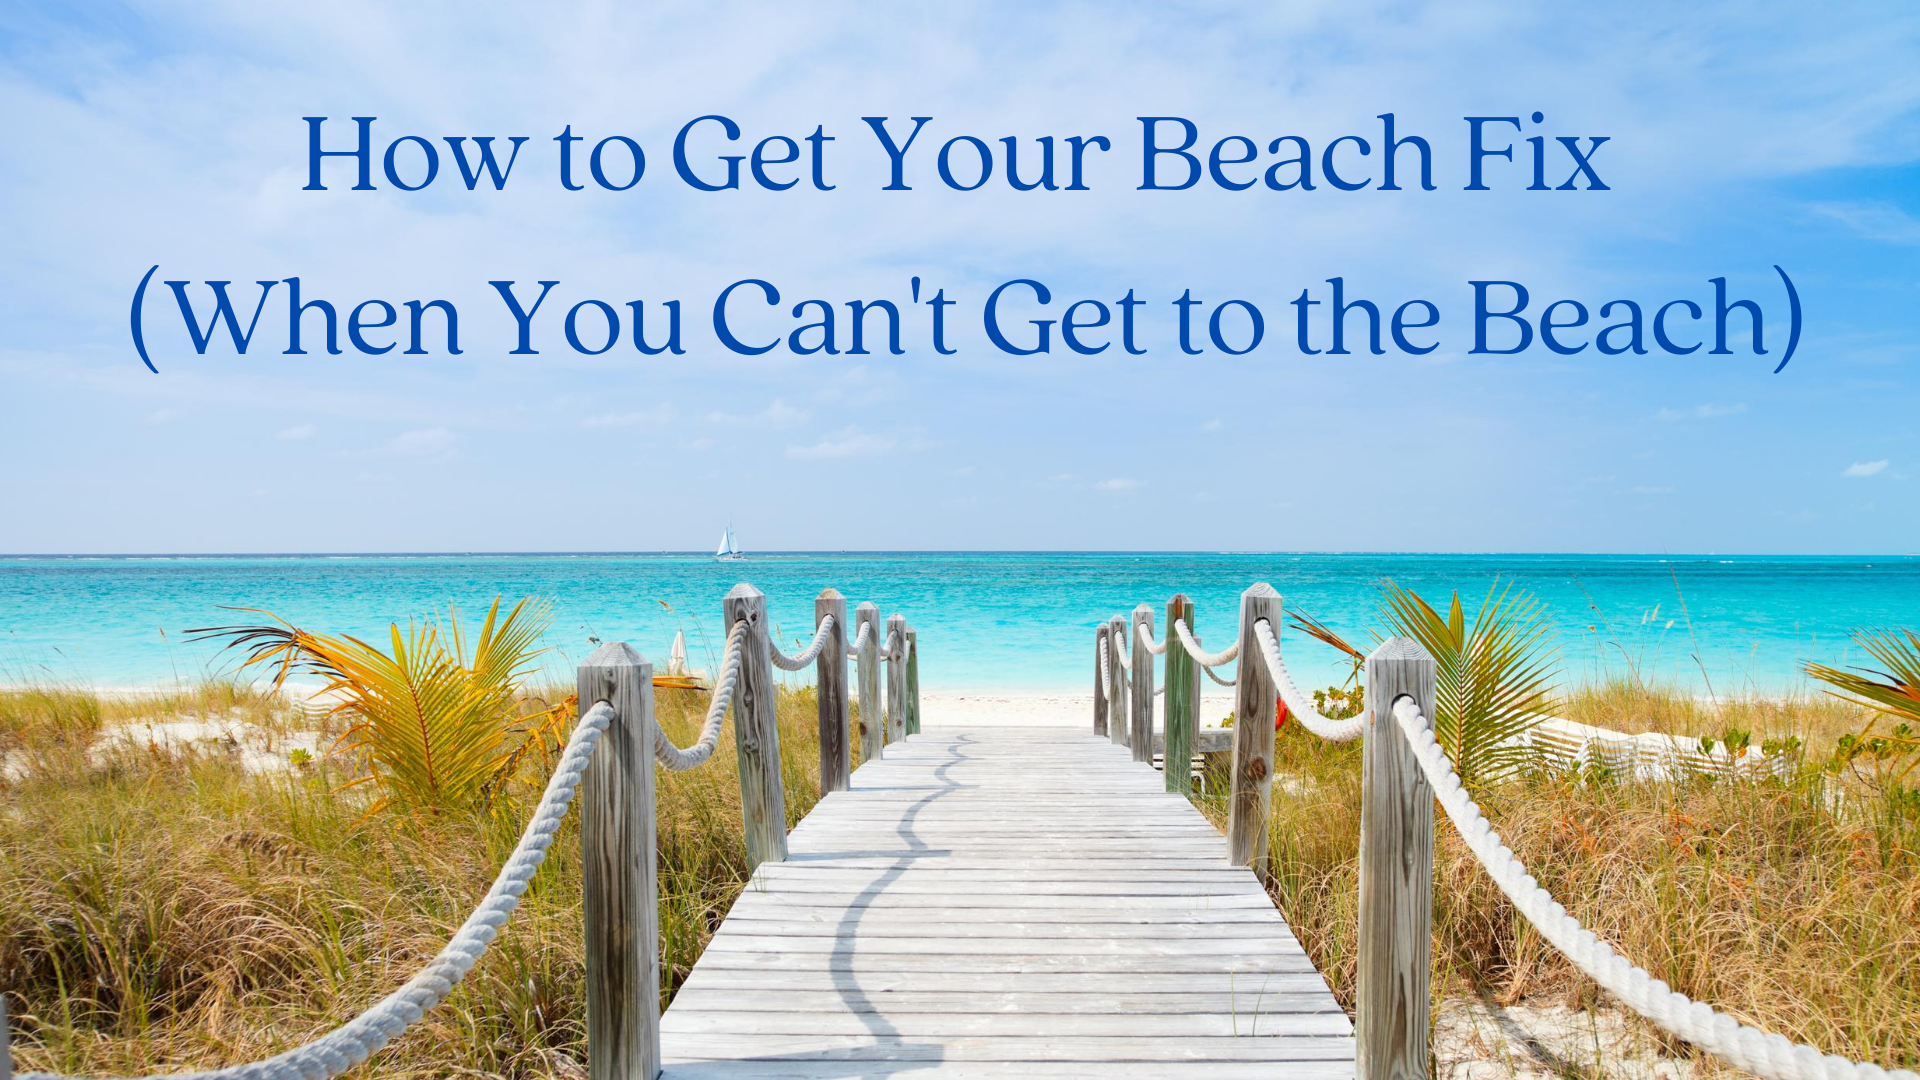 How to Get Your Beach Fix (When You Can't Get to the Beach)